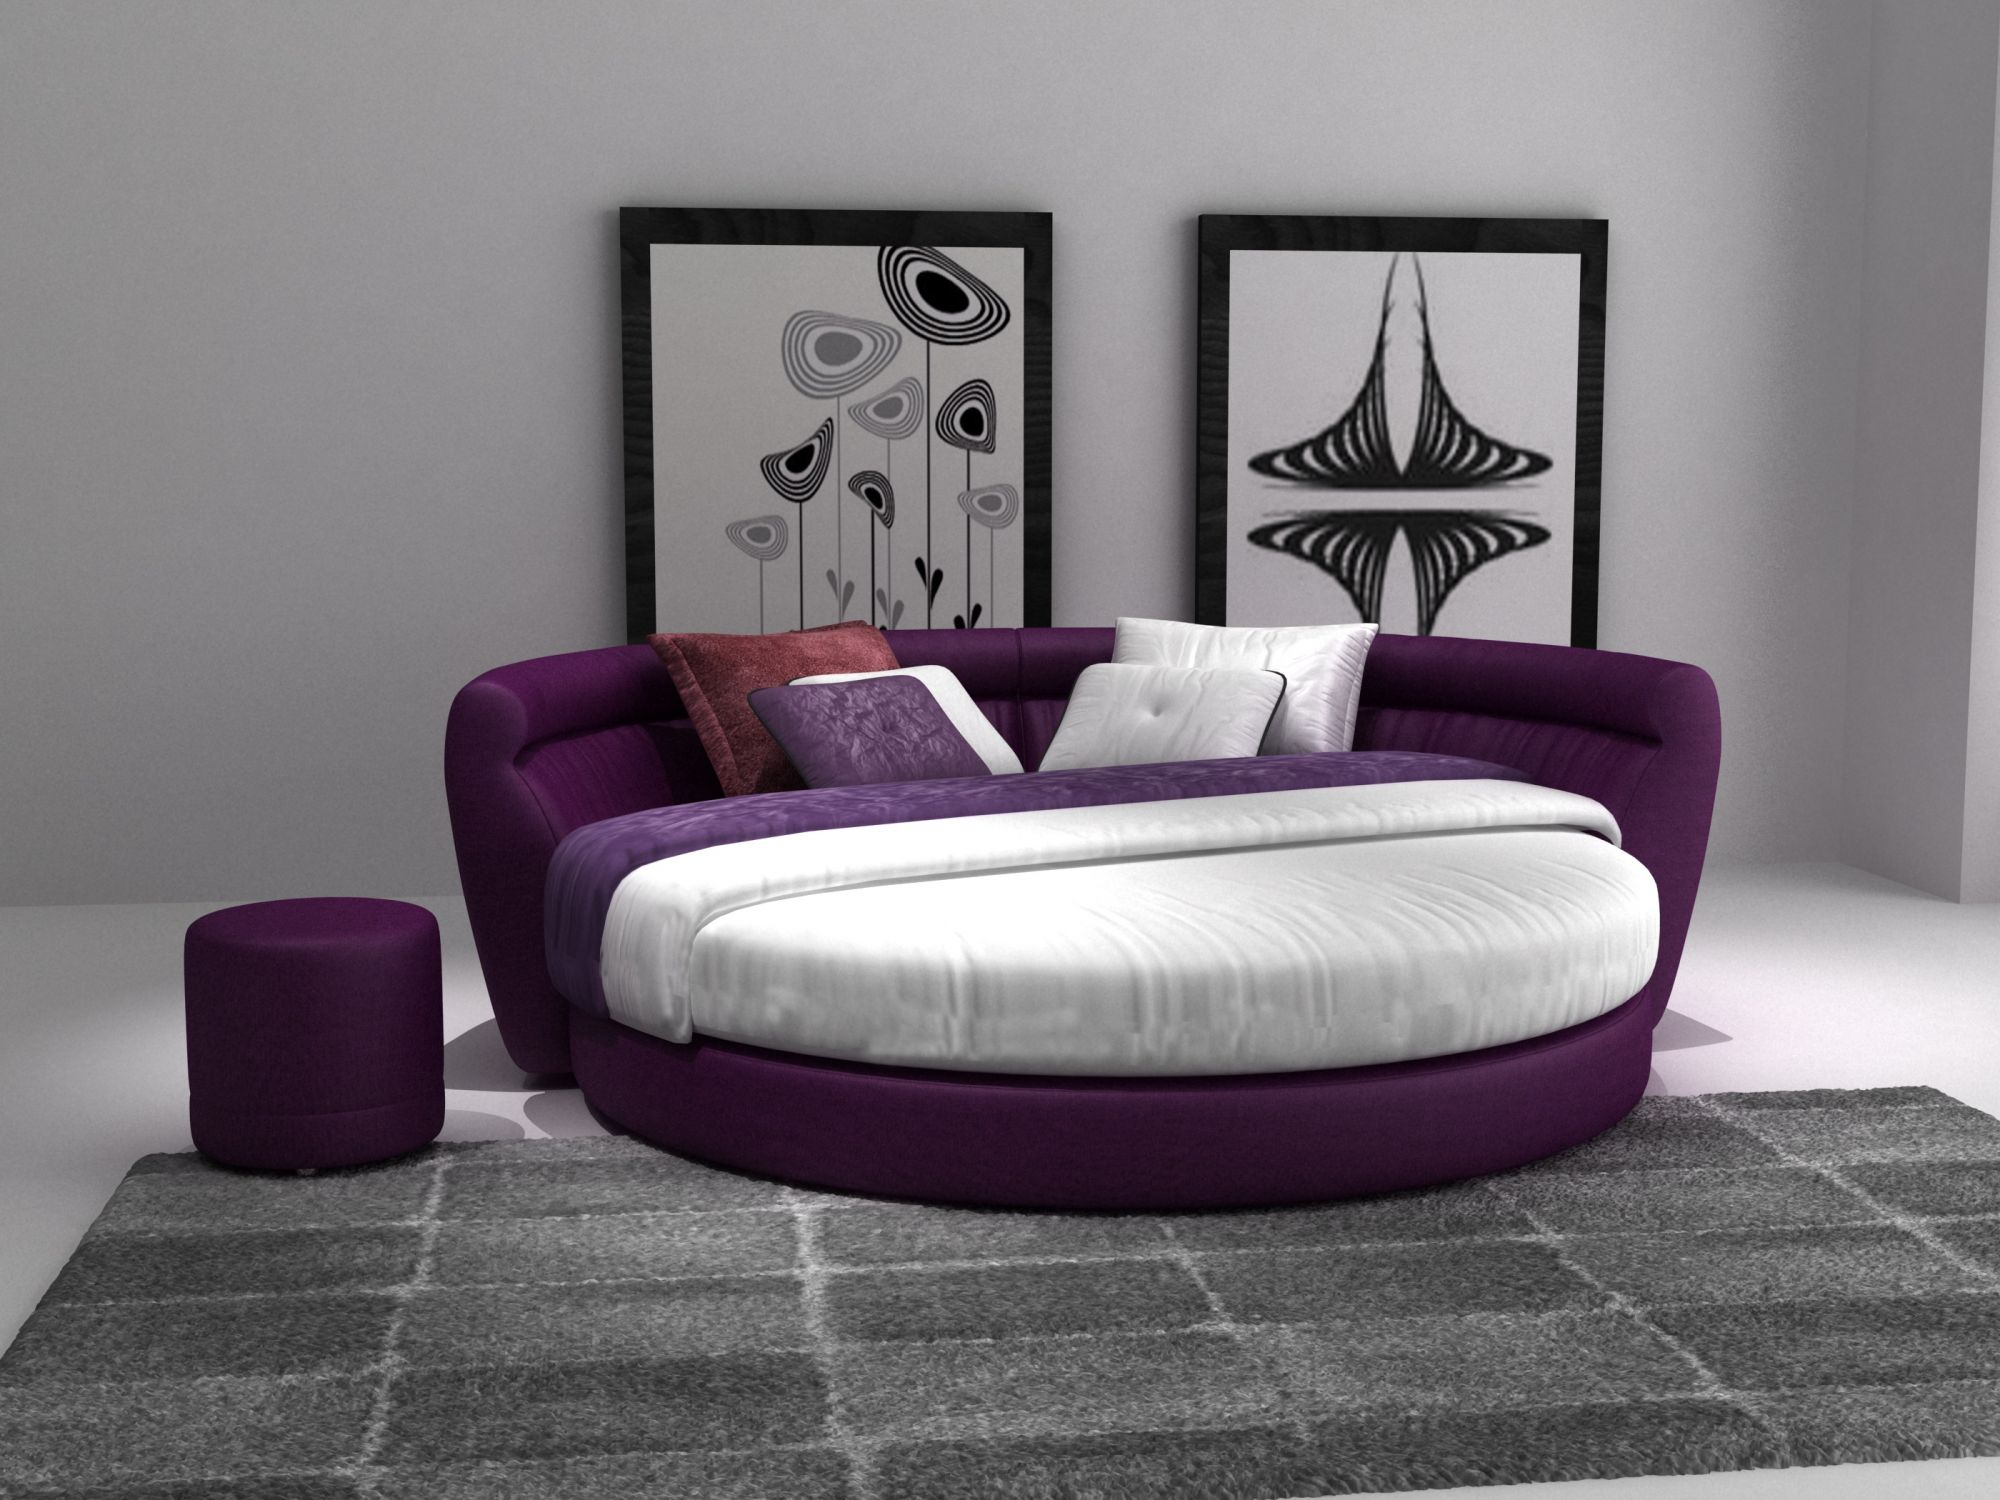 lit double rond awesome lit x cm avec sommier relevable. Black Bedroom Furniture Sets. Home Design Ideas